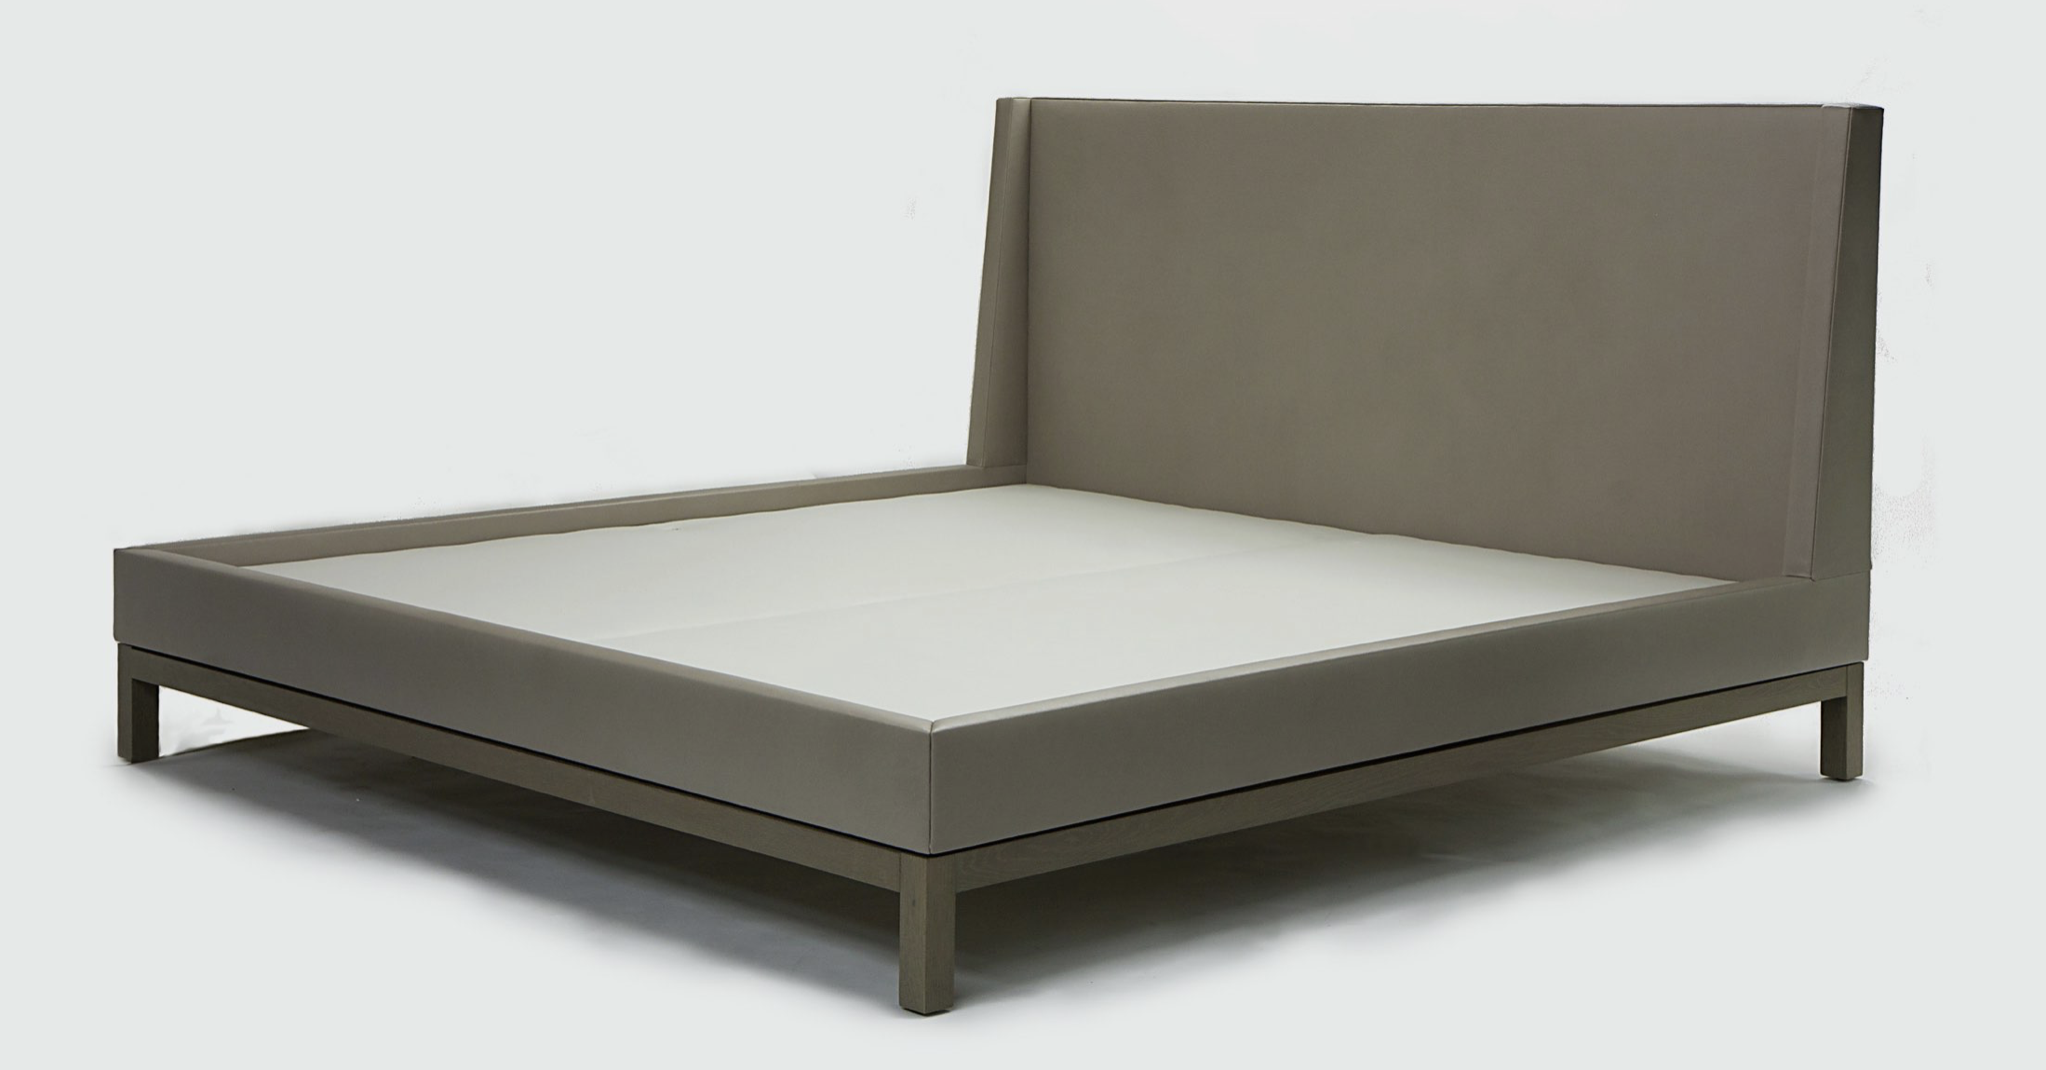 Aguirre Design - Lugano Bed - Upholstered in Leather and cerused Oak